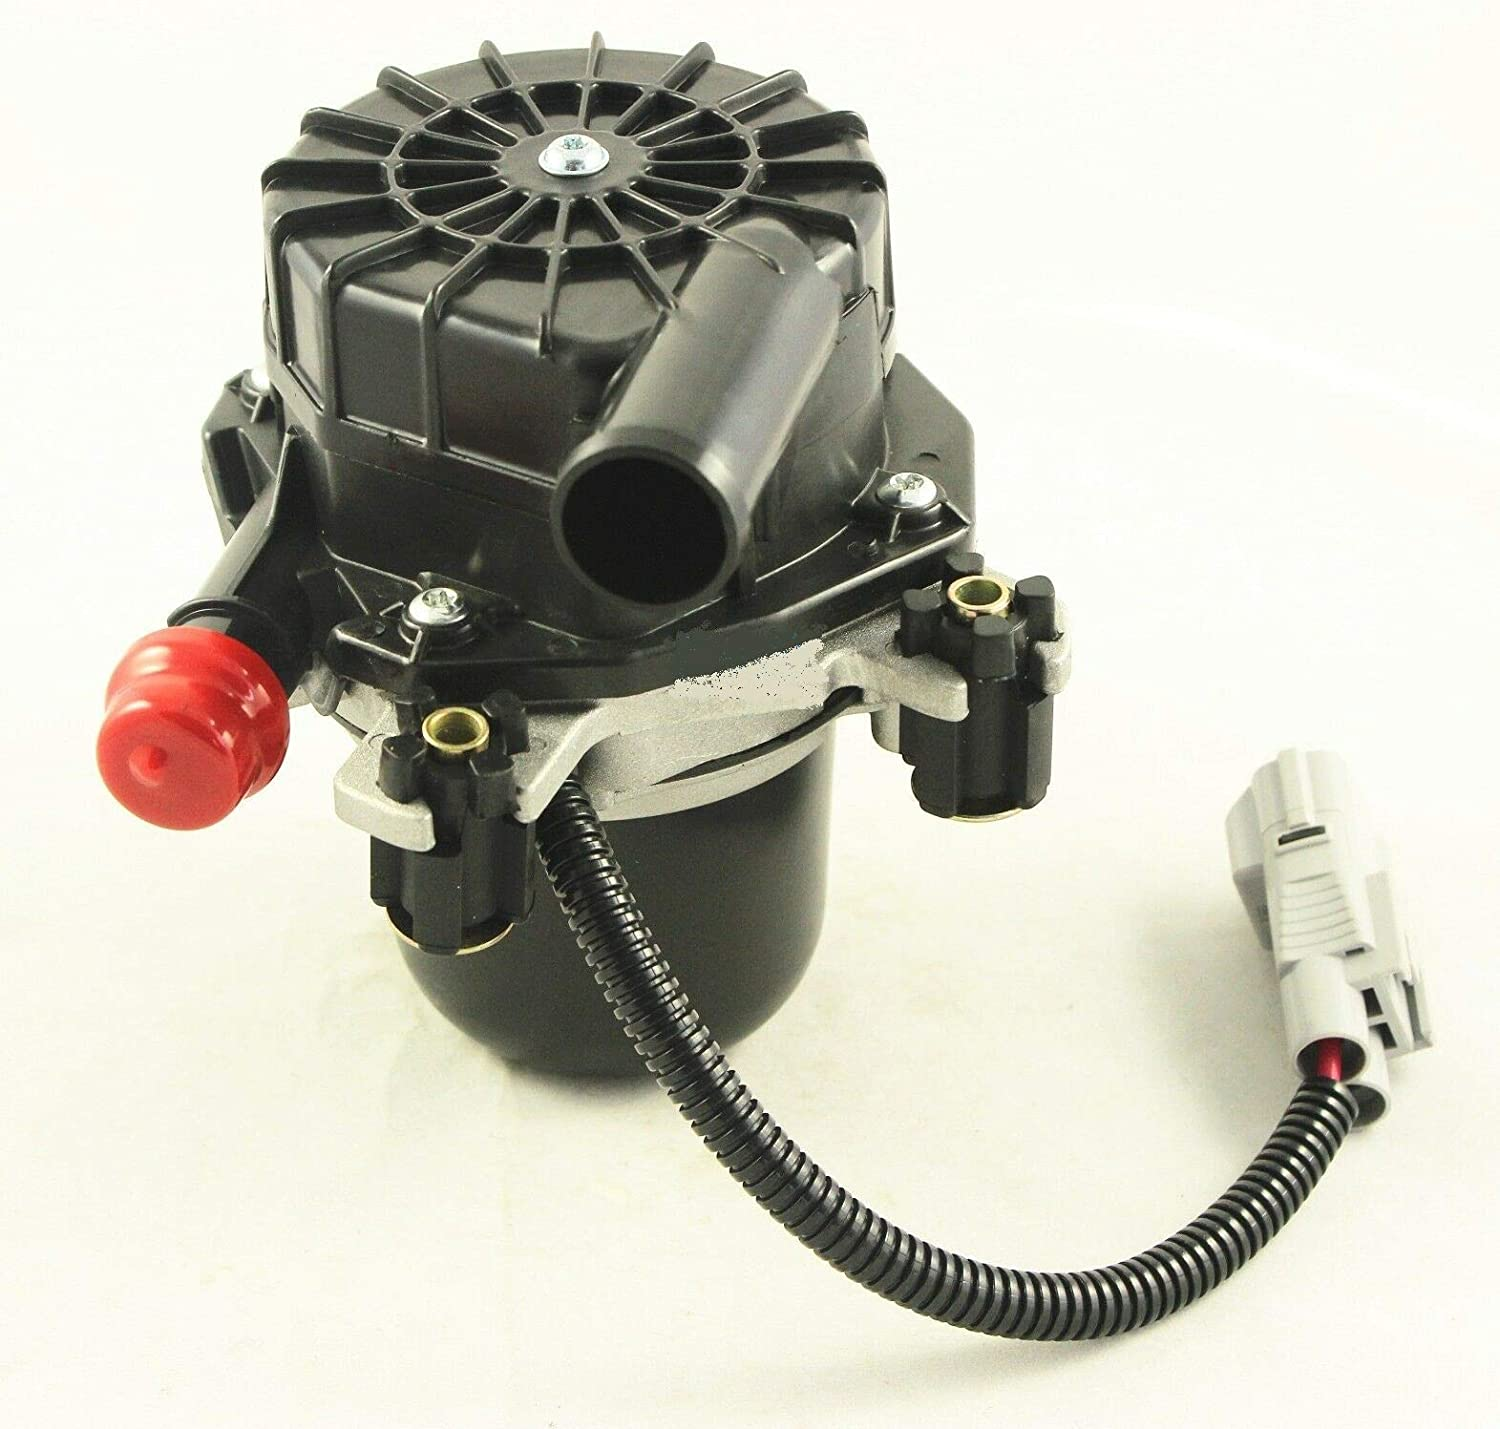 Secondary Air Injection Pump Smog Pump For 2004-2011 Toyota Lexus V8 17610-0C010